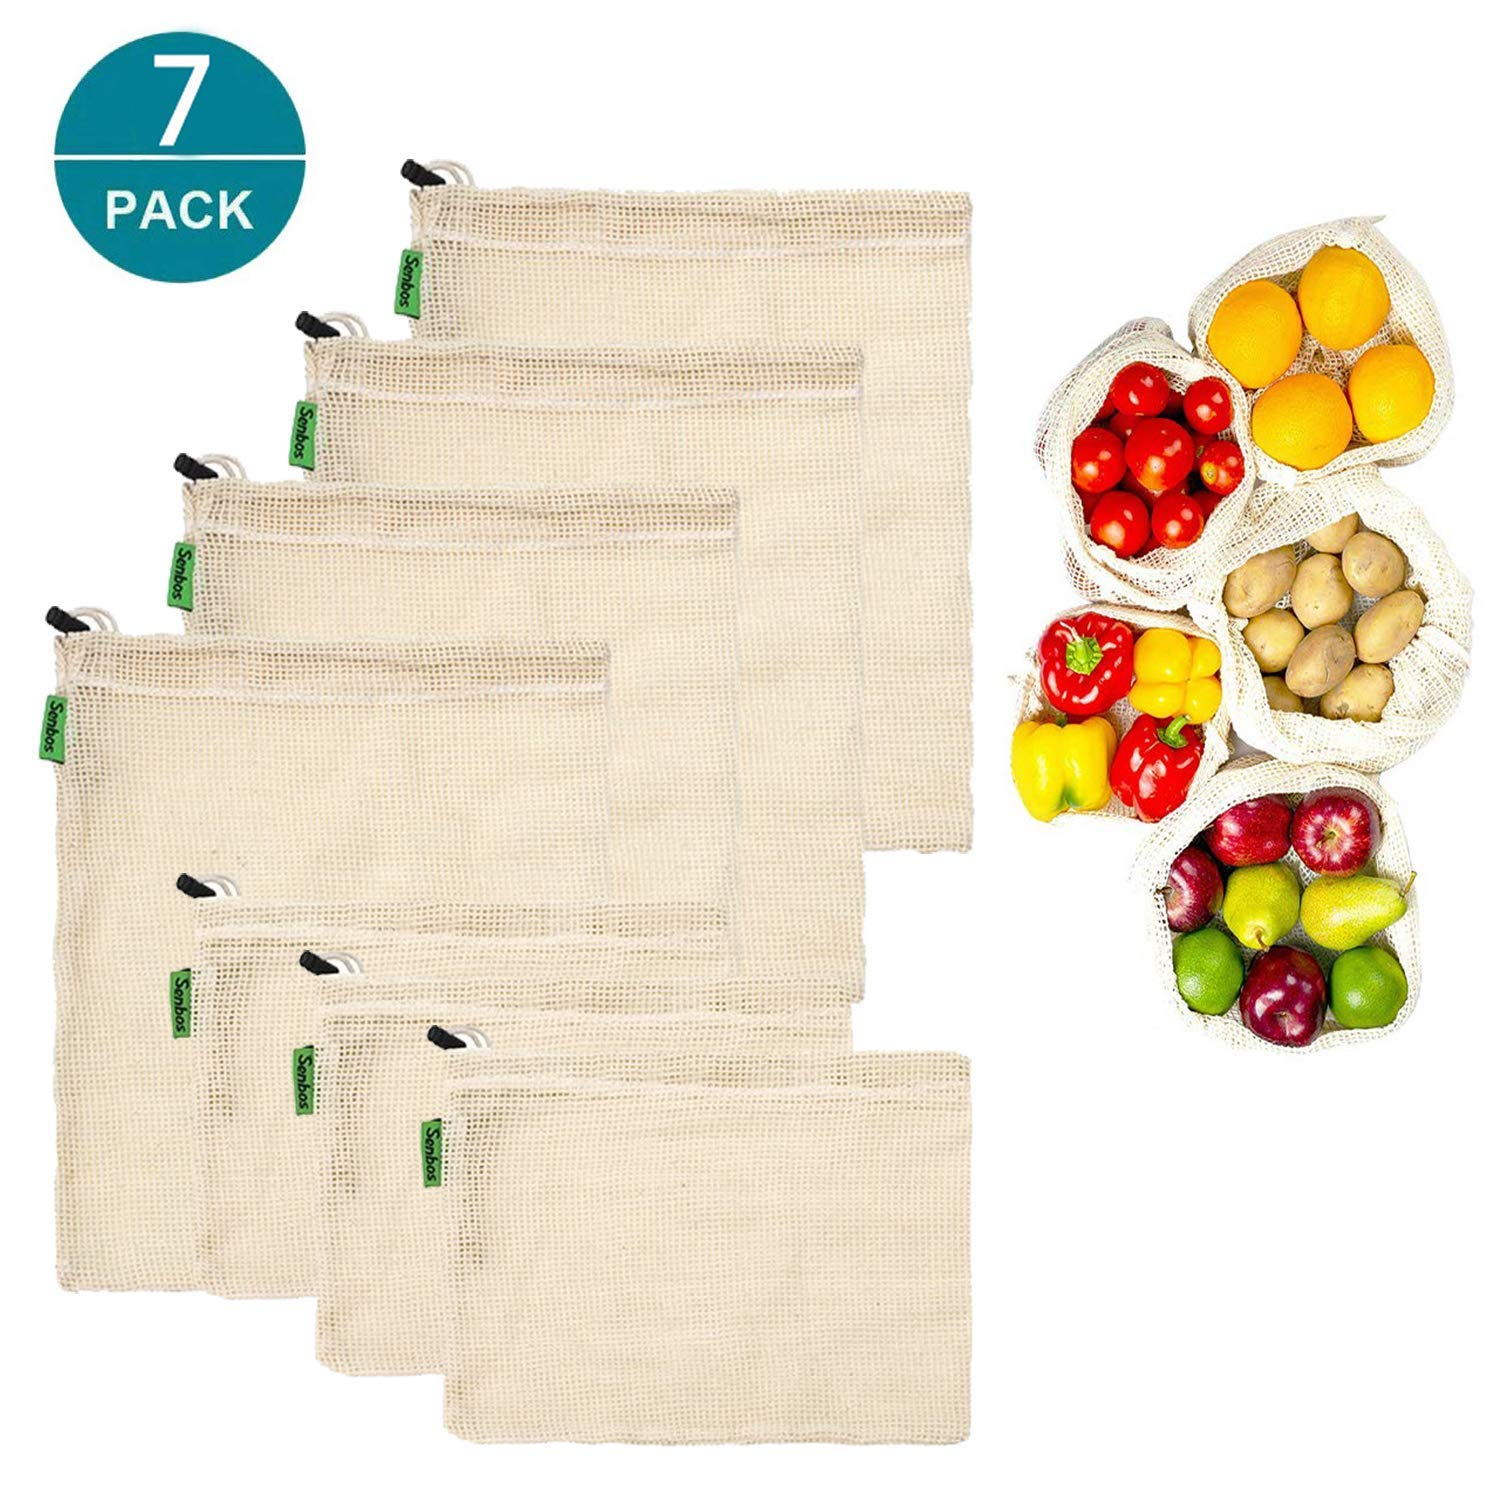 Reusable Produce Bags, Set of 7 Mesh Produce Bags Lightweight Drawstring Bags Zero-Waste Organic Bag Washable Cotton Bulk Bag For Grocery Shopping Storage Fruits Vegetable Toys (4 Medium, 3 Small)